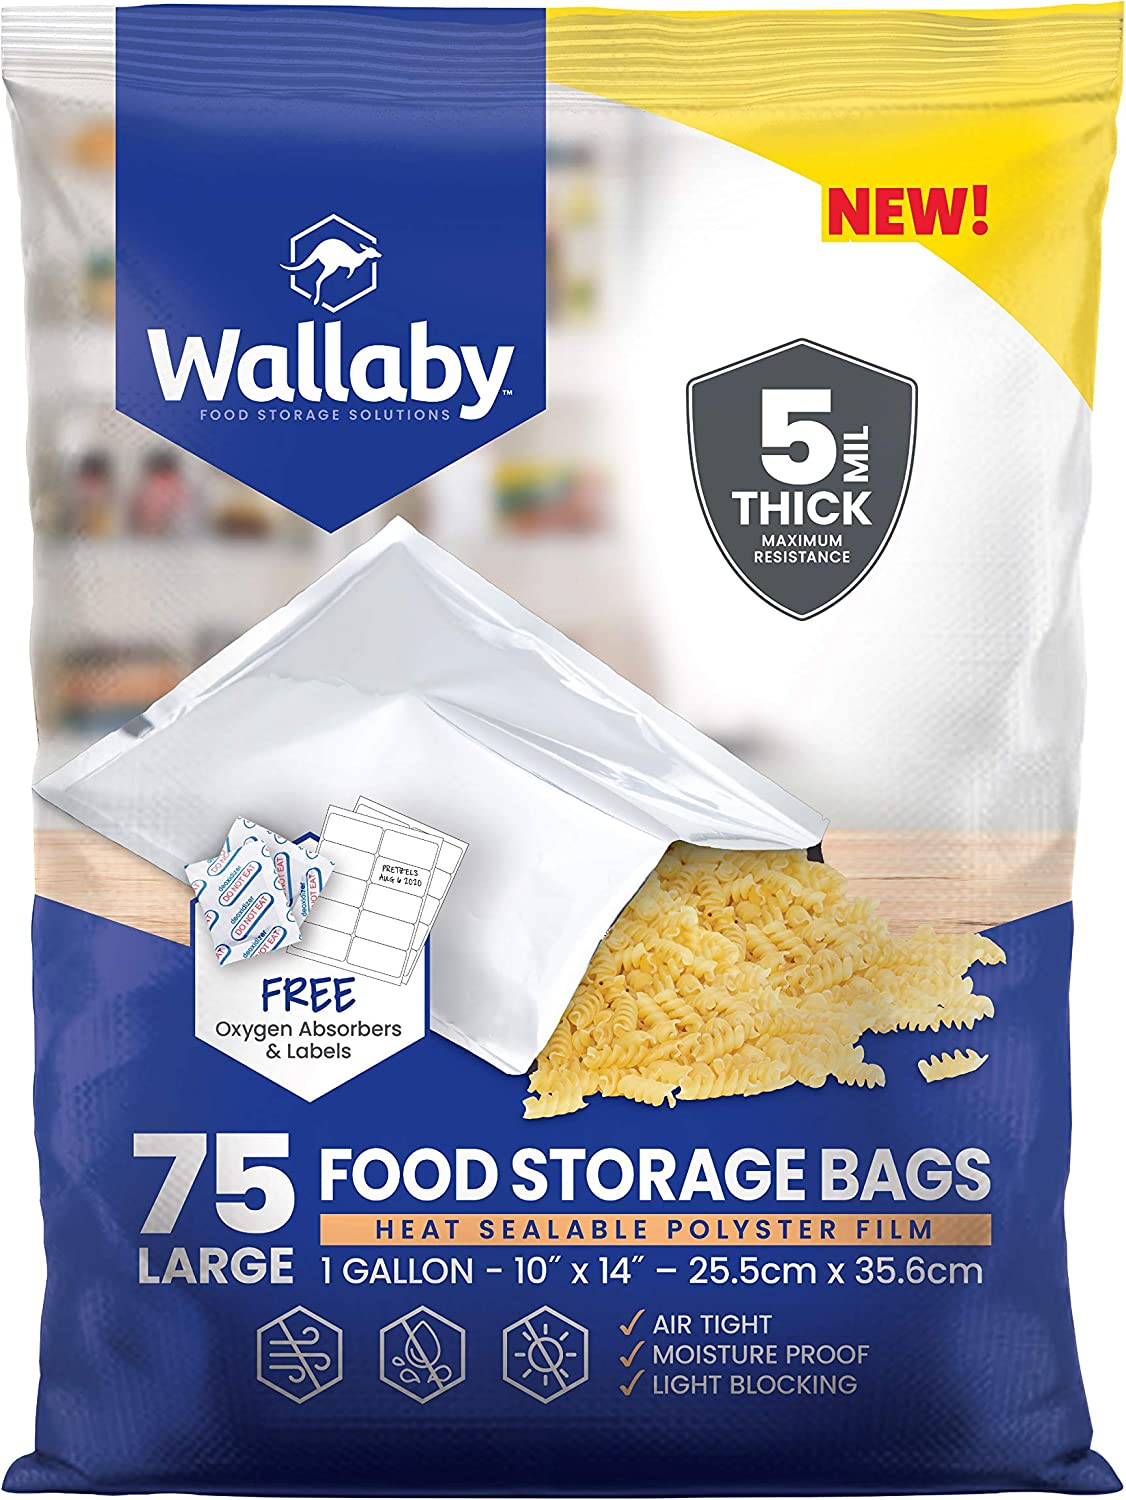 Wallaby Mylar Bag Bundle, (75x) - 1 Gallon - Silver (5 Mil - 10''x14'') With 80x-400cc Oxygen Absorbers and 80x Labels - Heat Sealable, FDA Grade, for Long Term Food Storage & Food Survival